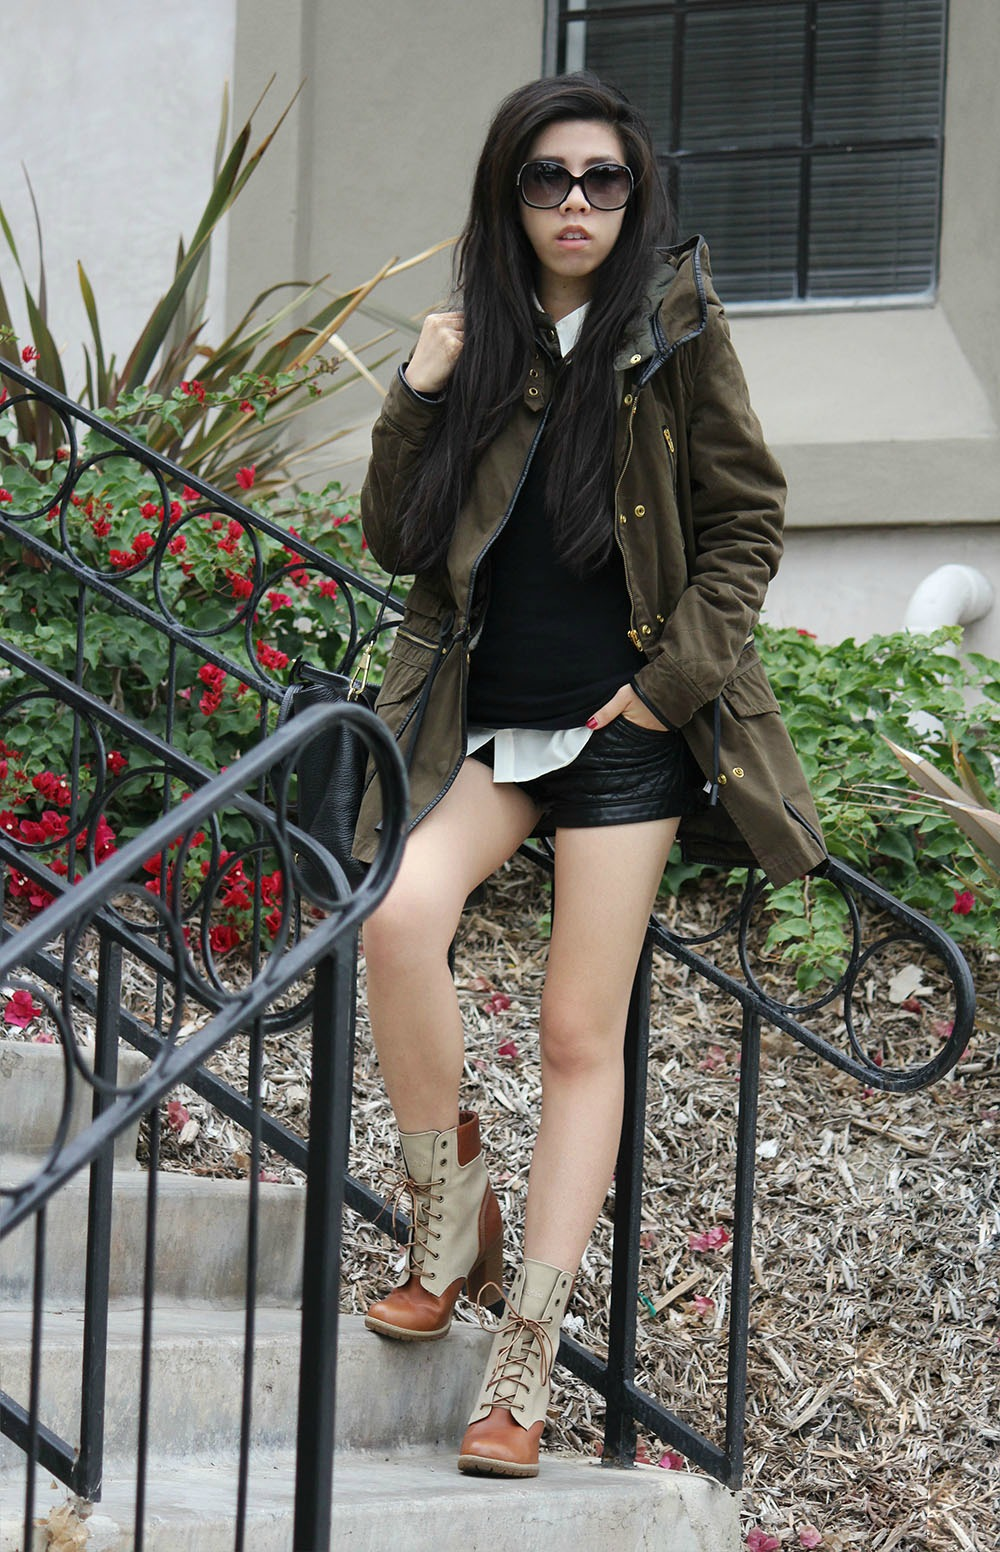 Adrienne Nguyen_How to Wear Timberland Boots to School_Casual Fashion_Graduate Student_Student Pharmacist UCSD